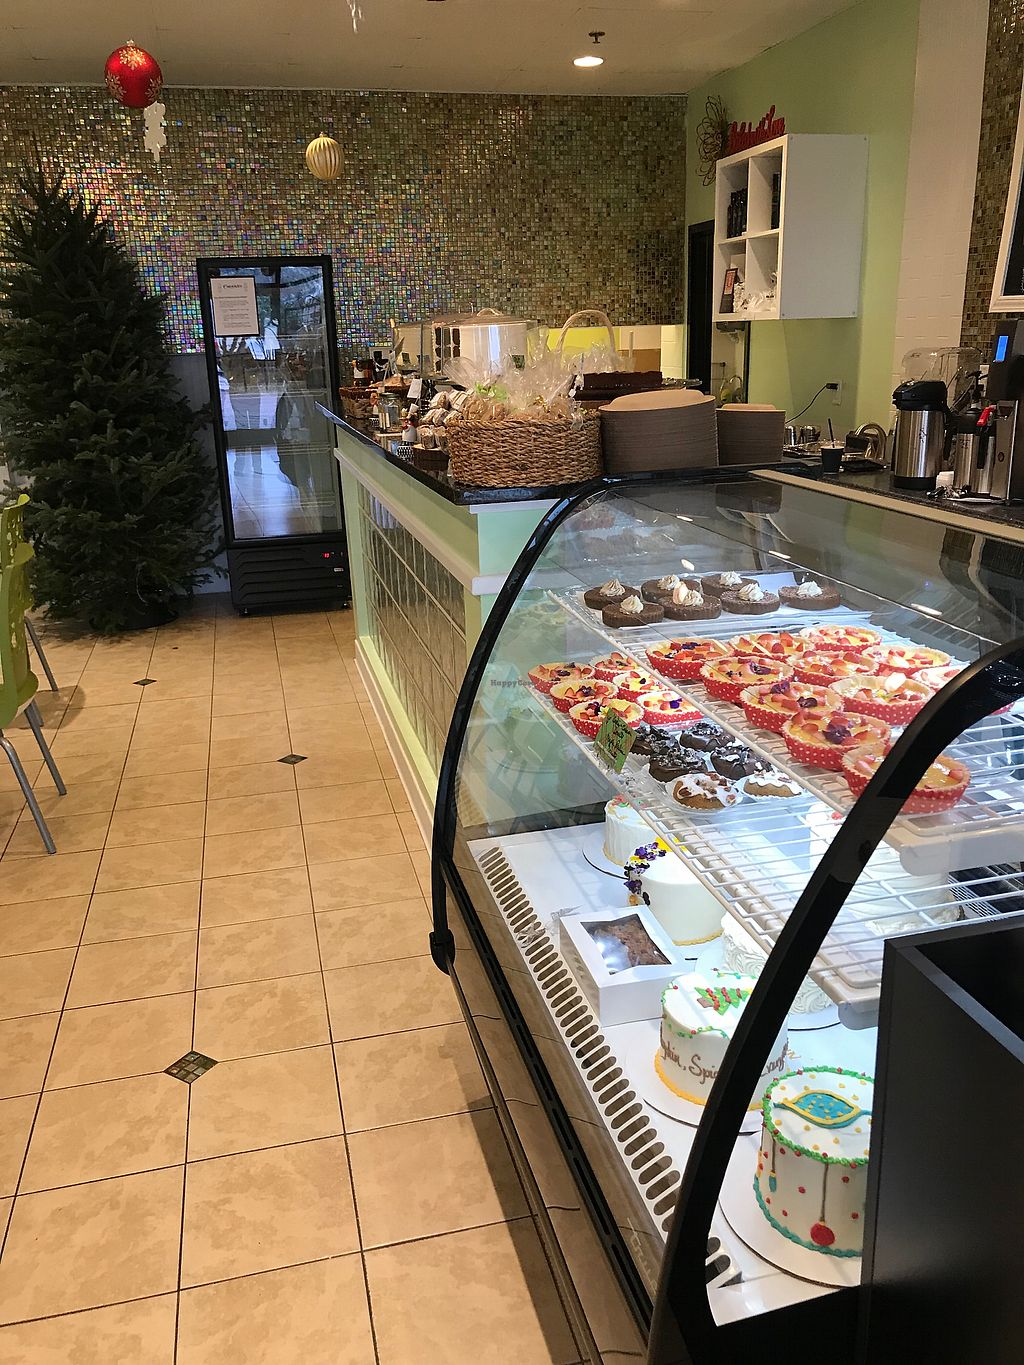 """Photo of To Your Health Bakery  by <a href=""""/members/profile/ChristinaCatherine"""">ChristinaCatherine</a> <br/>Lovely lil shop.  <br/> December 3, 2017  - <a href='/contact/abuse/image/97141/331728'>Report</a>"""